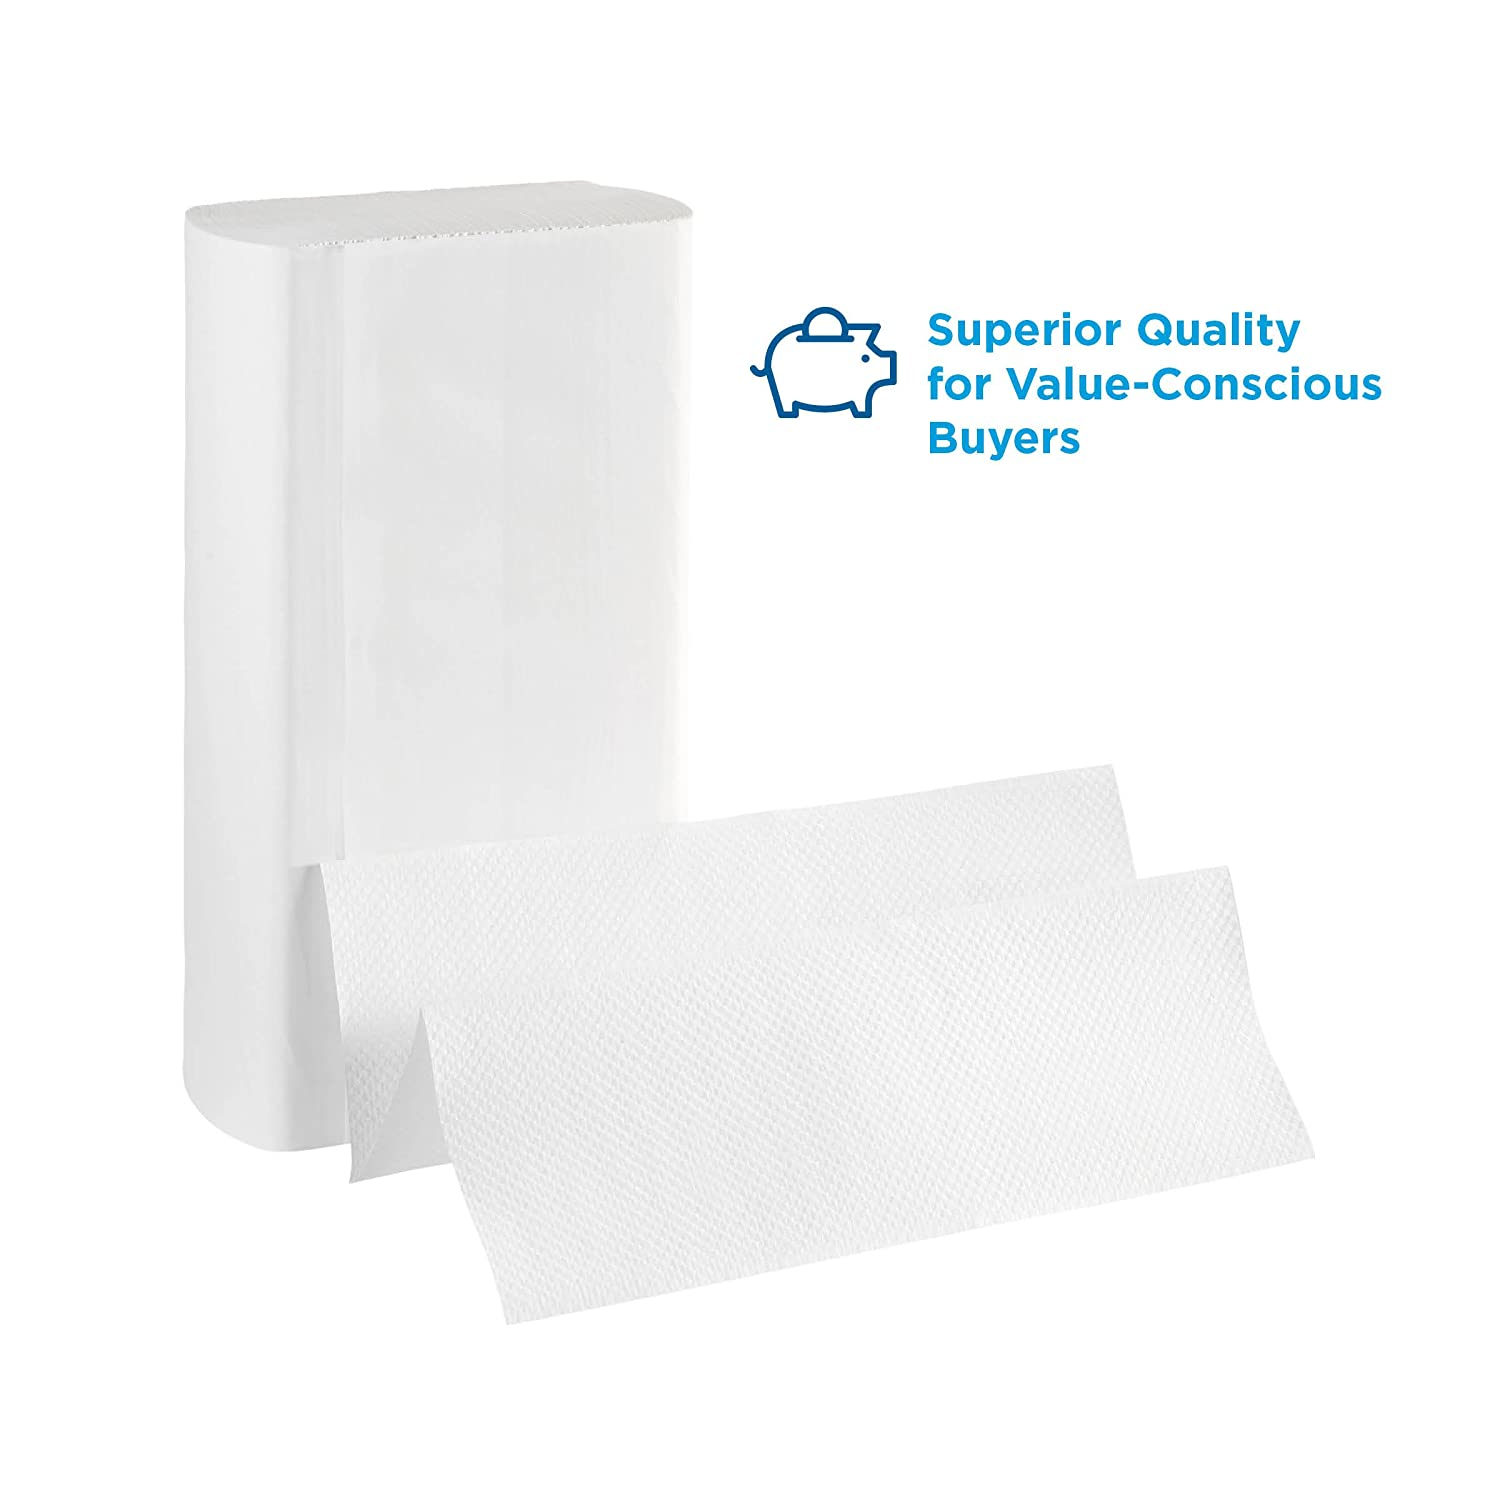 "Pacific Blue Basic Recycled Multifold Paper Towels (Previously branded Envision) by GP PRO (Georgia-Pacific), White, 24590, 250 Towels Per Pack, 16 Packs Per Case (4000 Total), 9.20"" x 9.40"" 24590 - 16 Packs/Case White"